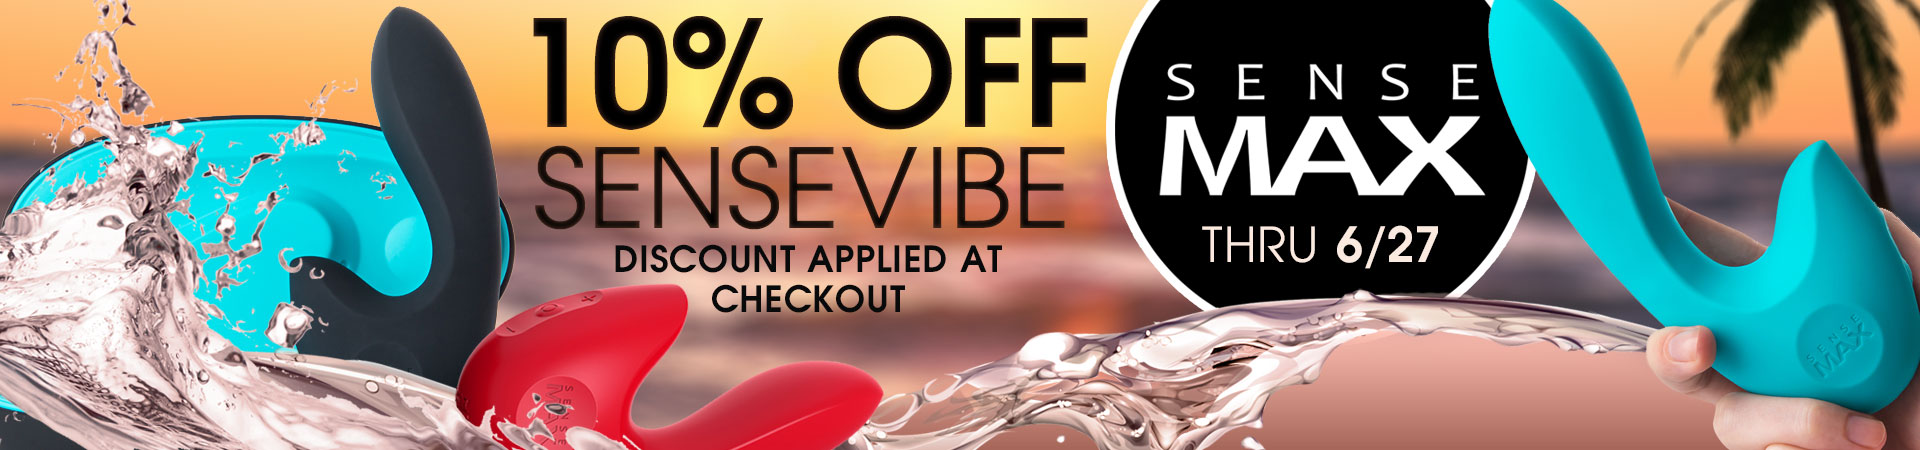 SAVE 10% On SENSEVIBE By SenseMax Thru June 27th! Discount Applied At Checkout.